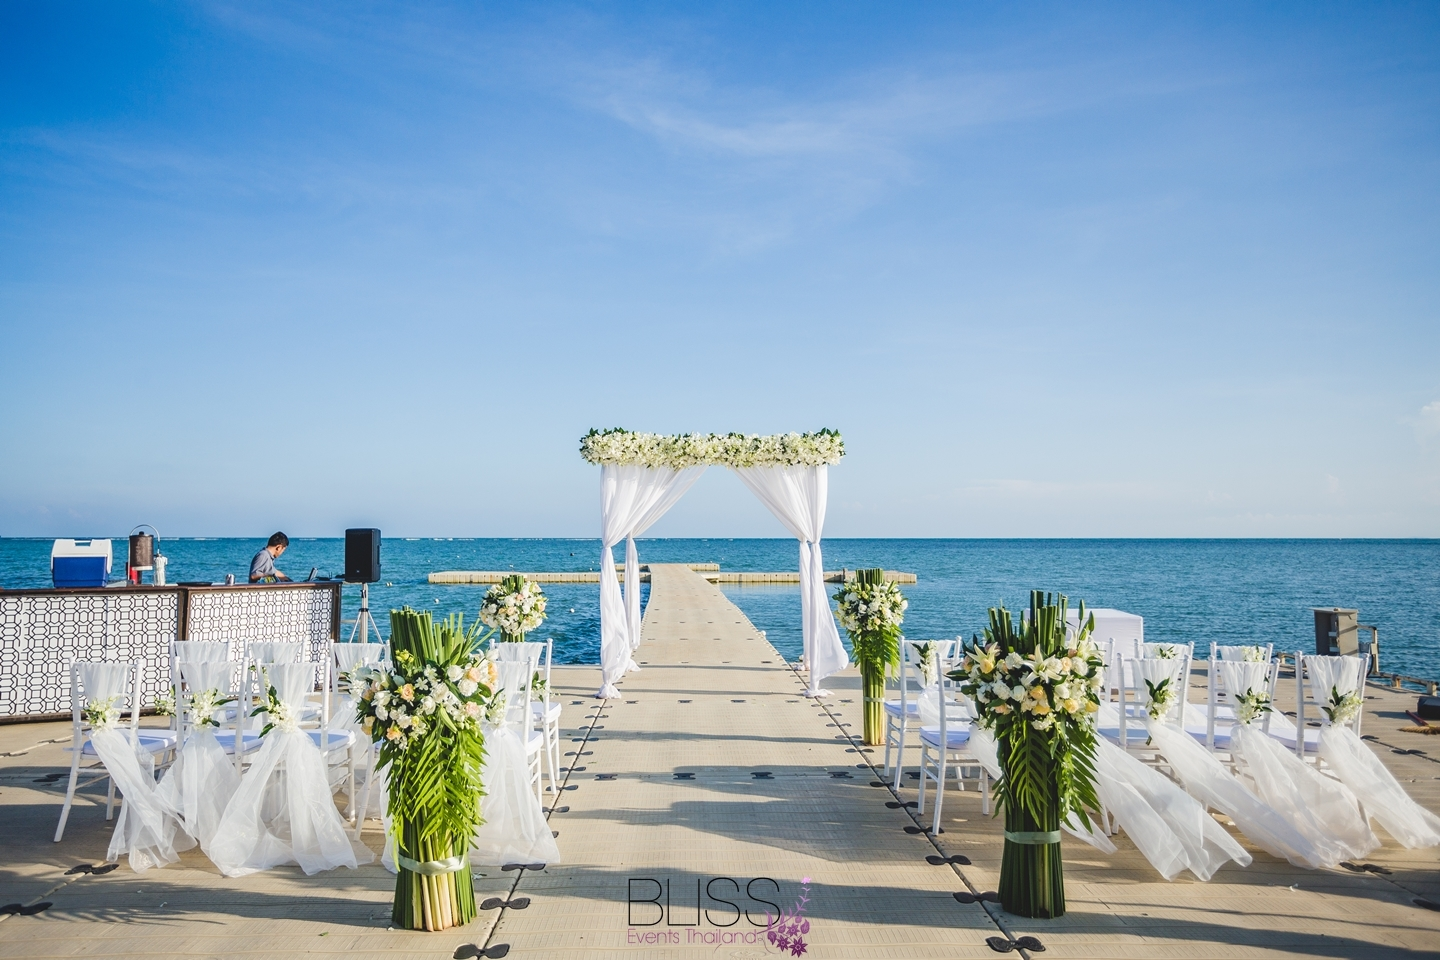 Ocan pire wedding at Le Meridien Koh Samui